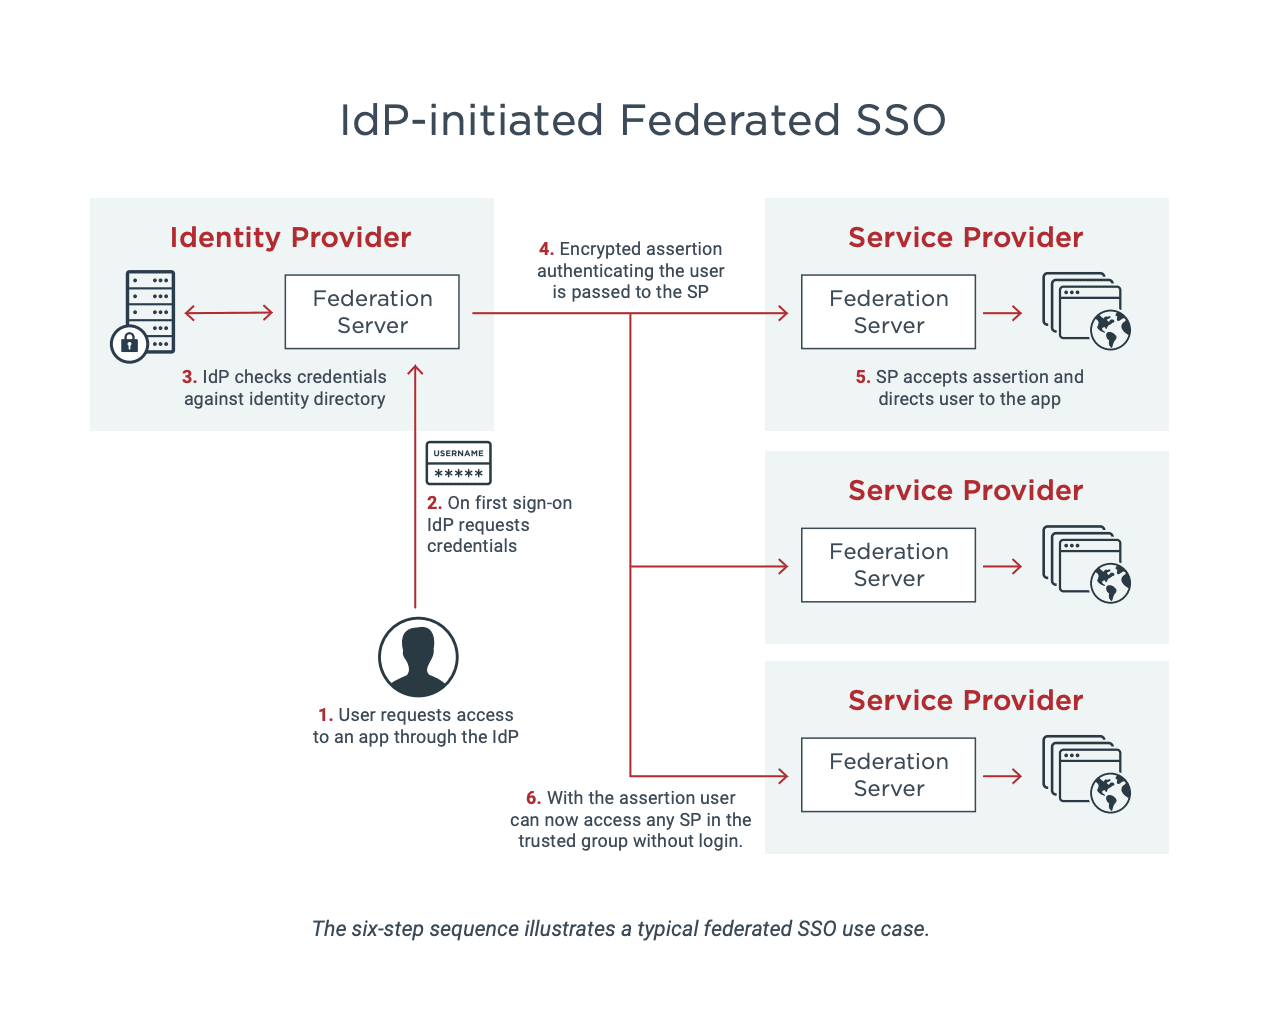 This six-step sequence illustrates a typical federated SSO use case.